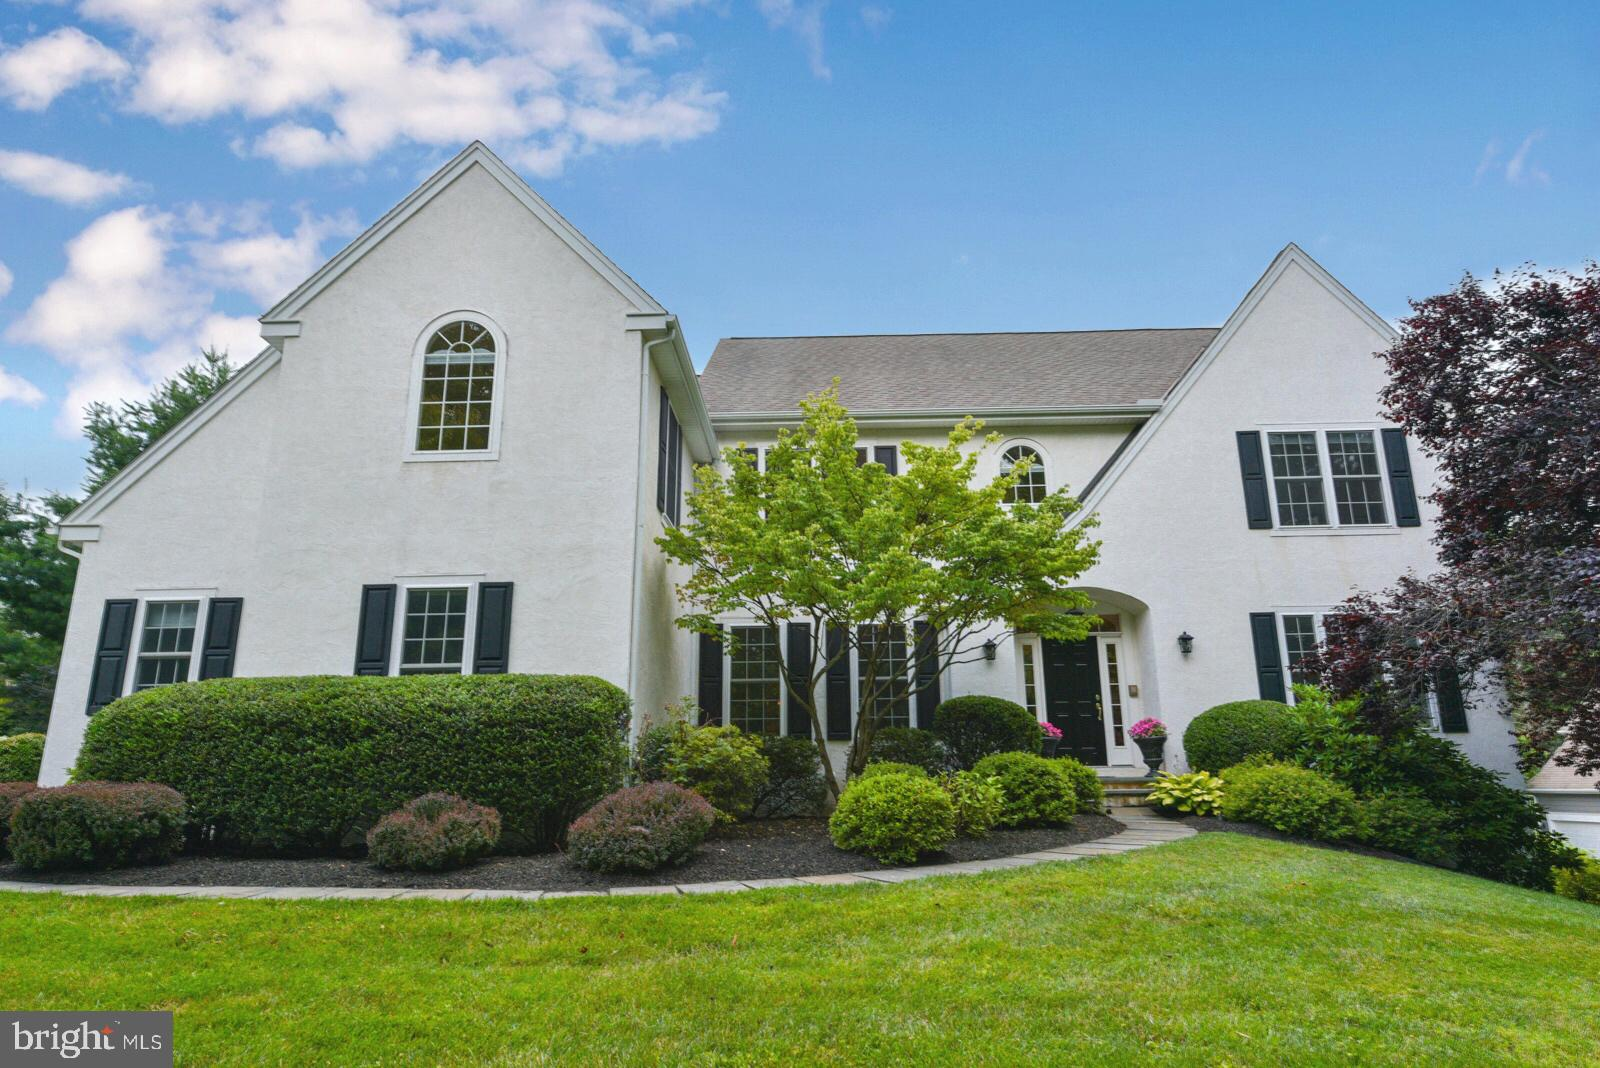 708 PENNY LANE, WEST CHESTER, PA 19380